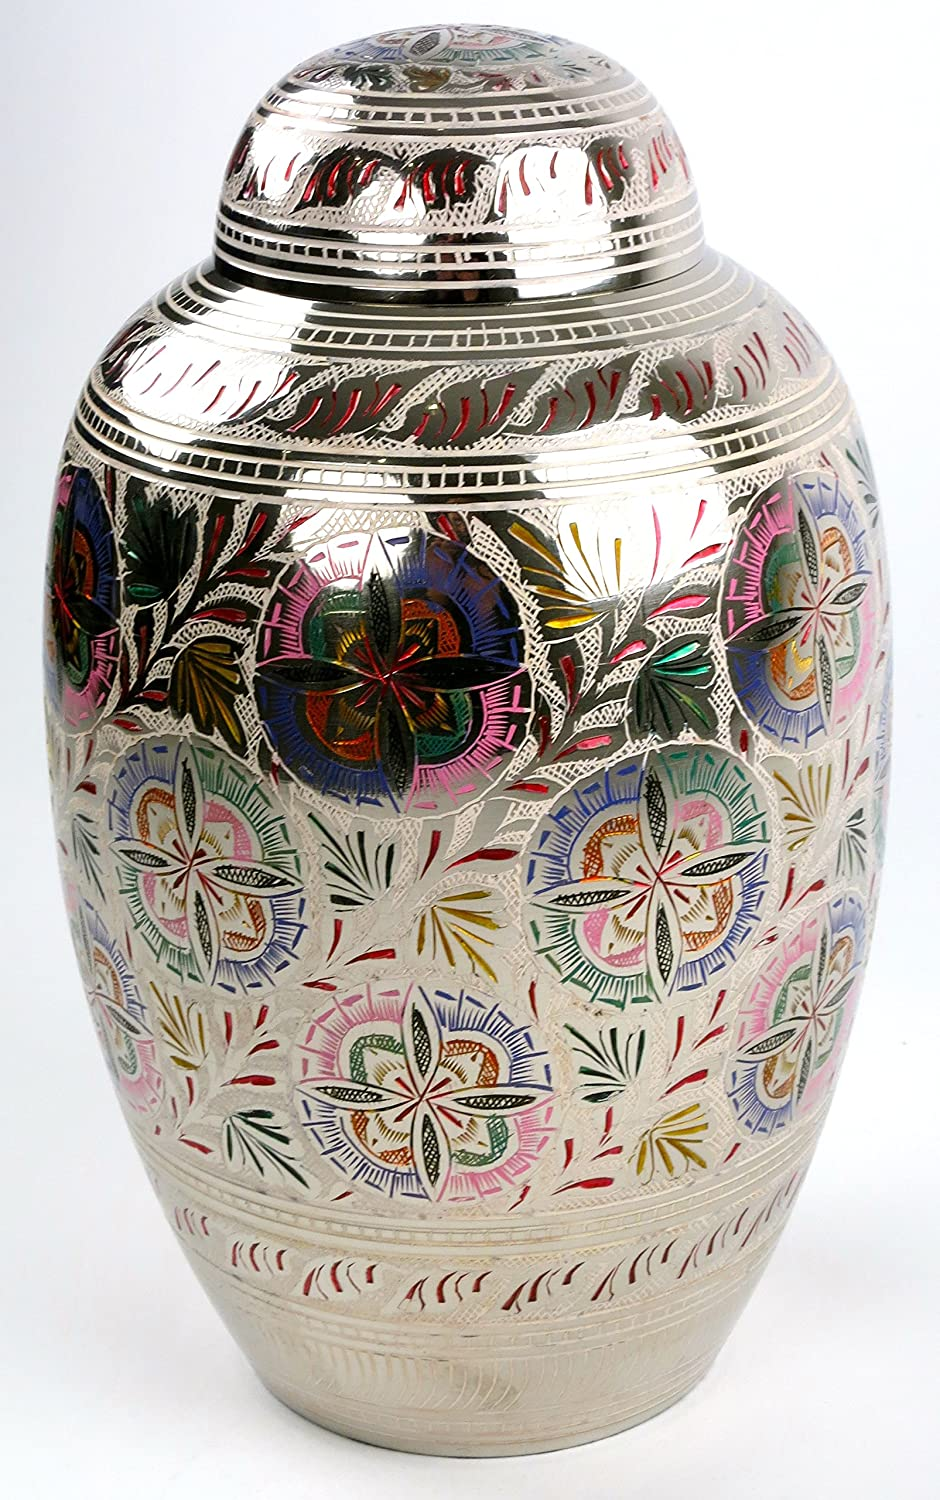 Lattice Flower Funeral Urn by Liliane Memorials - Cremation Urn for Human Ashes - Hand Made in Brass - Suitable for Cemetery Burial or Niche - Large Size fits remains of Adults up to 200 lbs - Florale